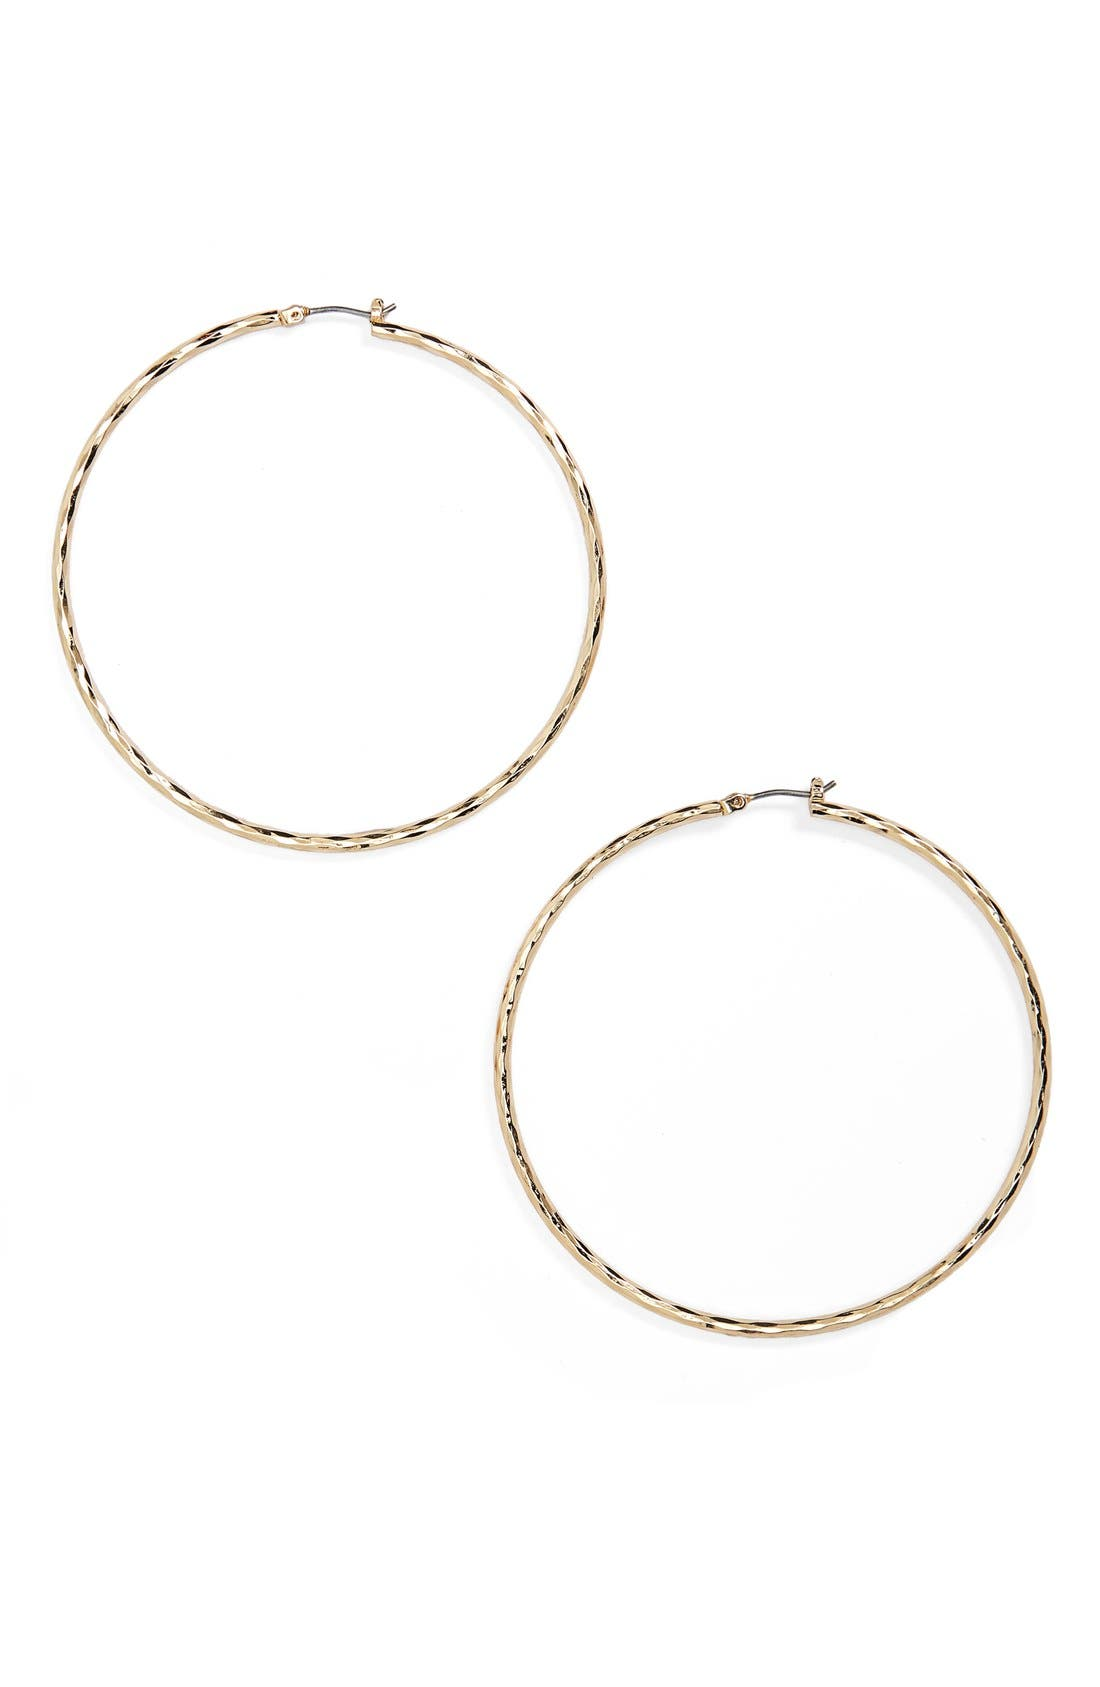 Main Image - Nordstrom Hammered Hoop Earrings